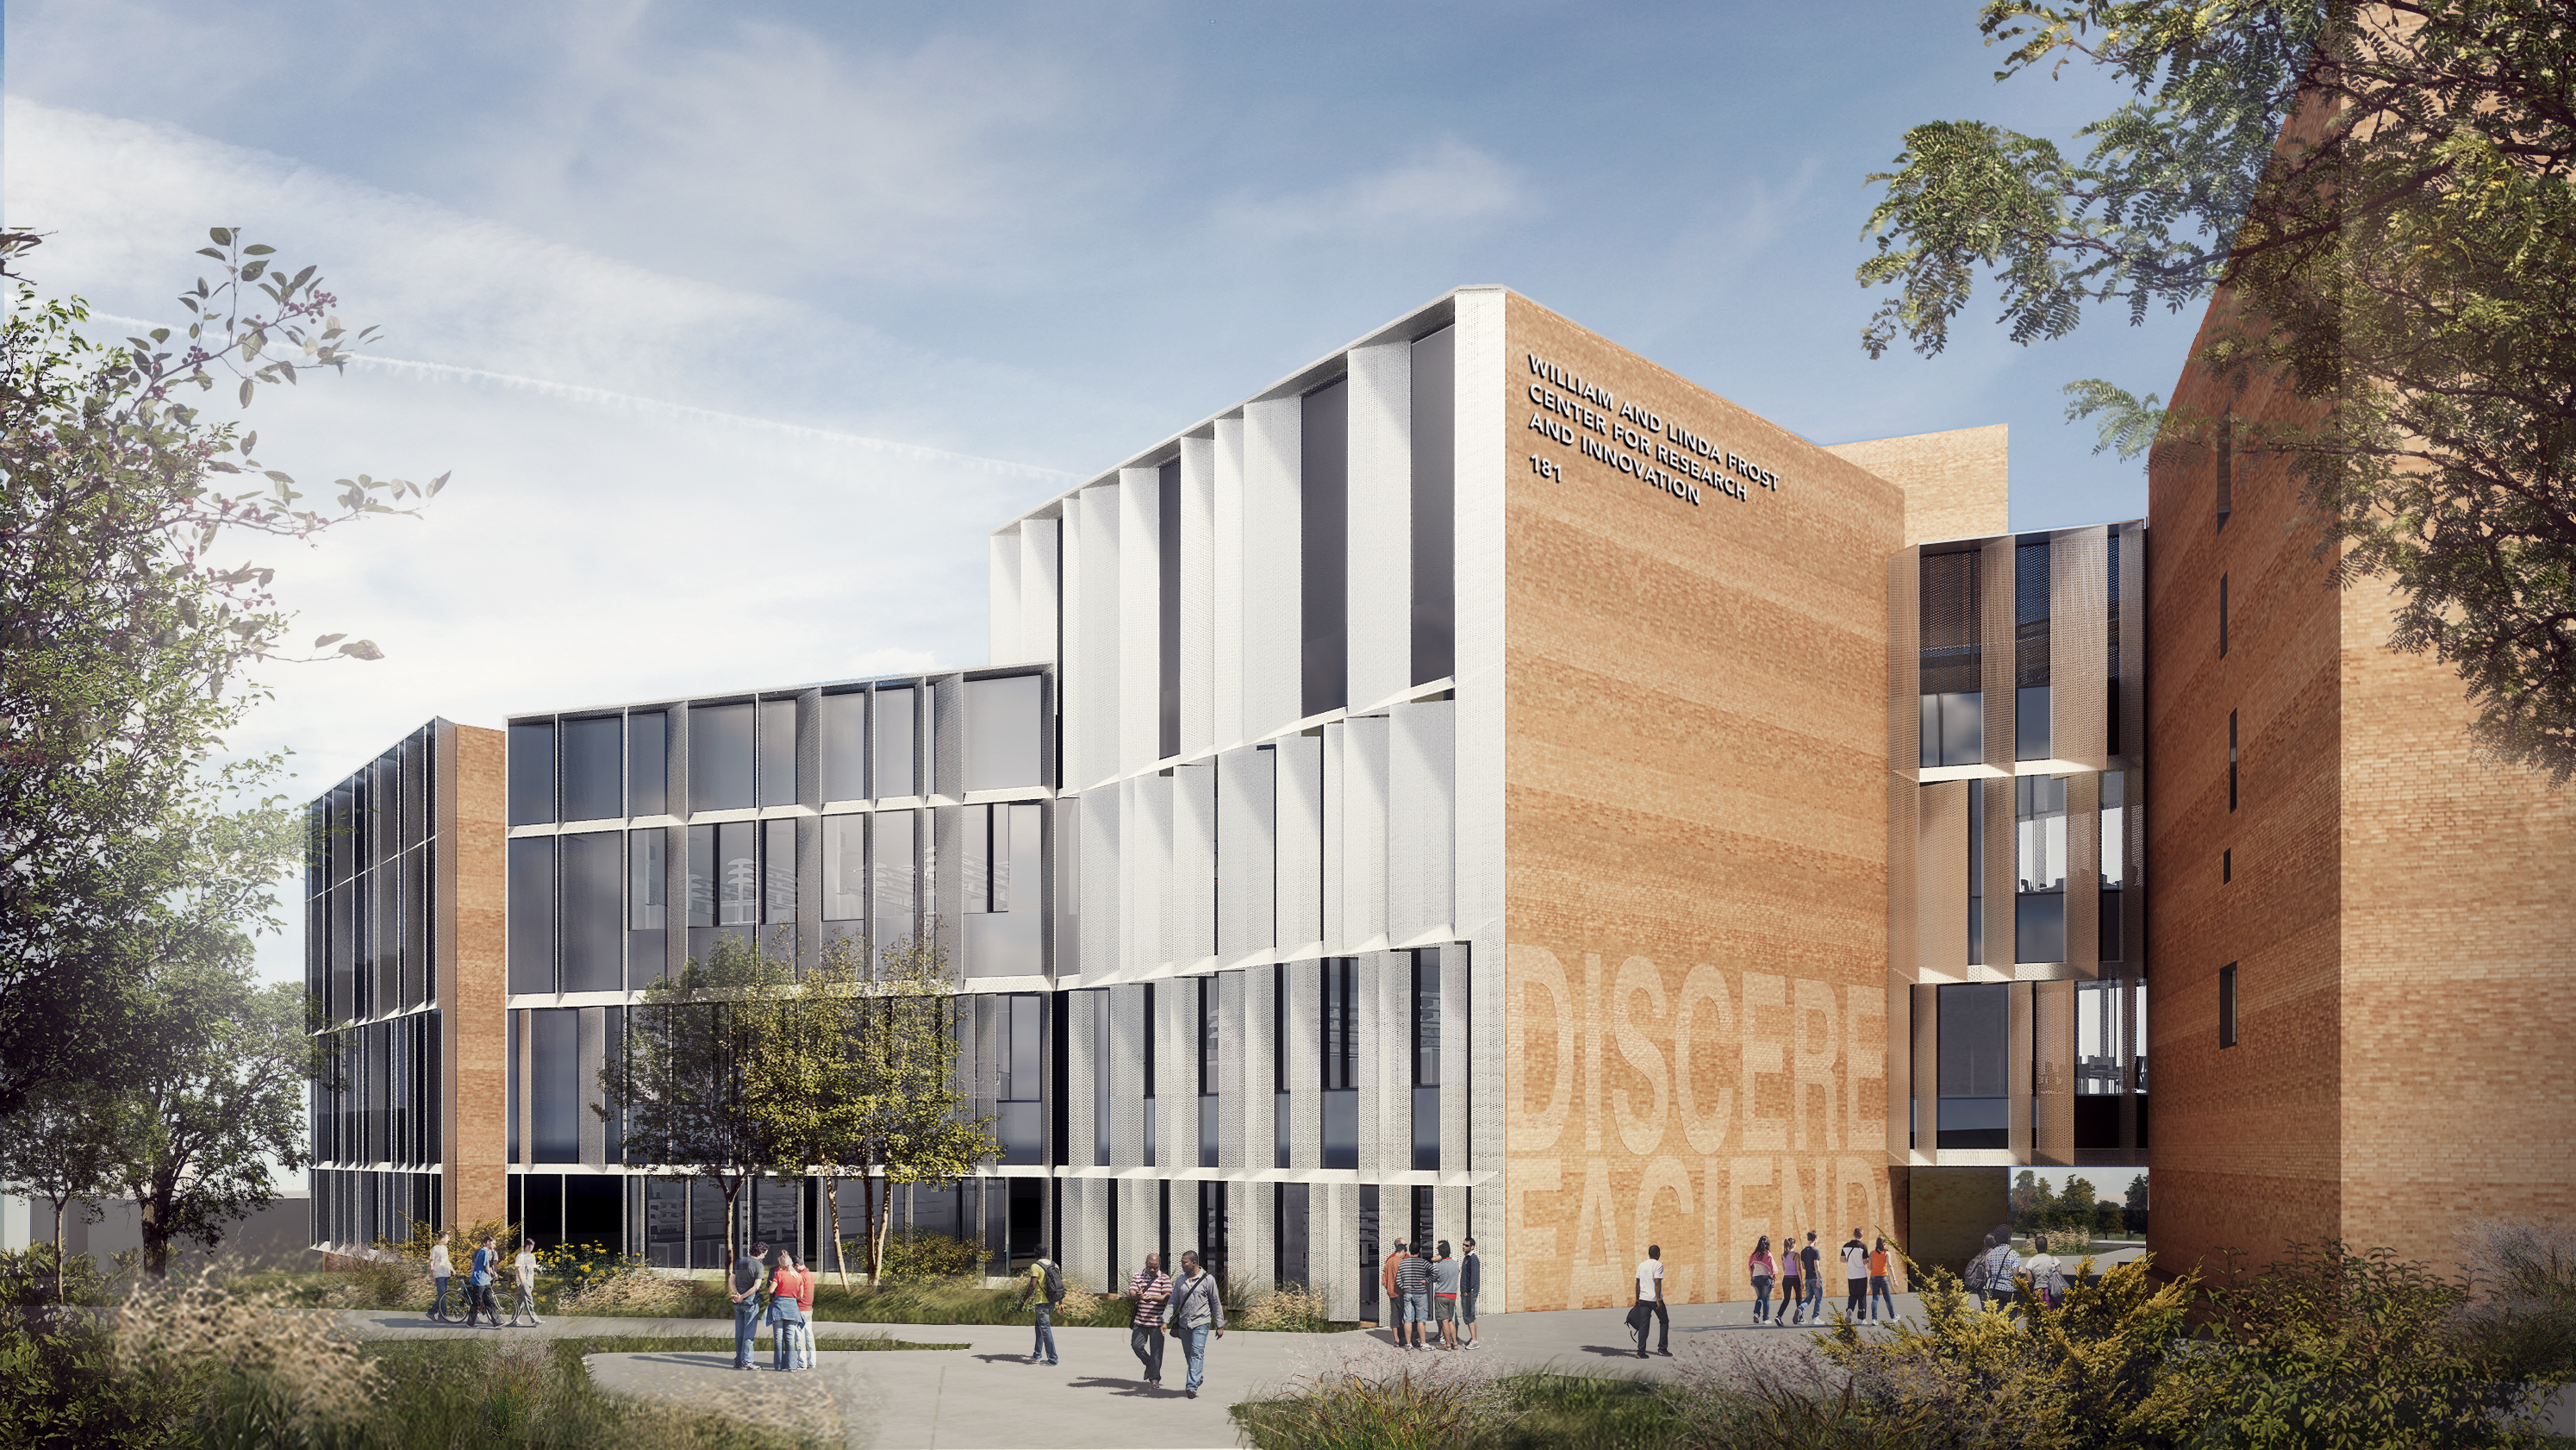 Rendering of the exterior of the William and Linda Frost Center for Research and Innovation